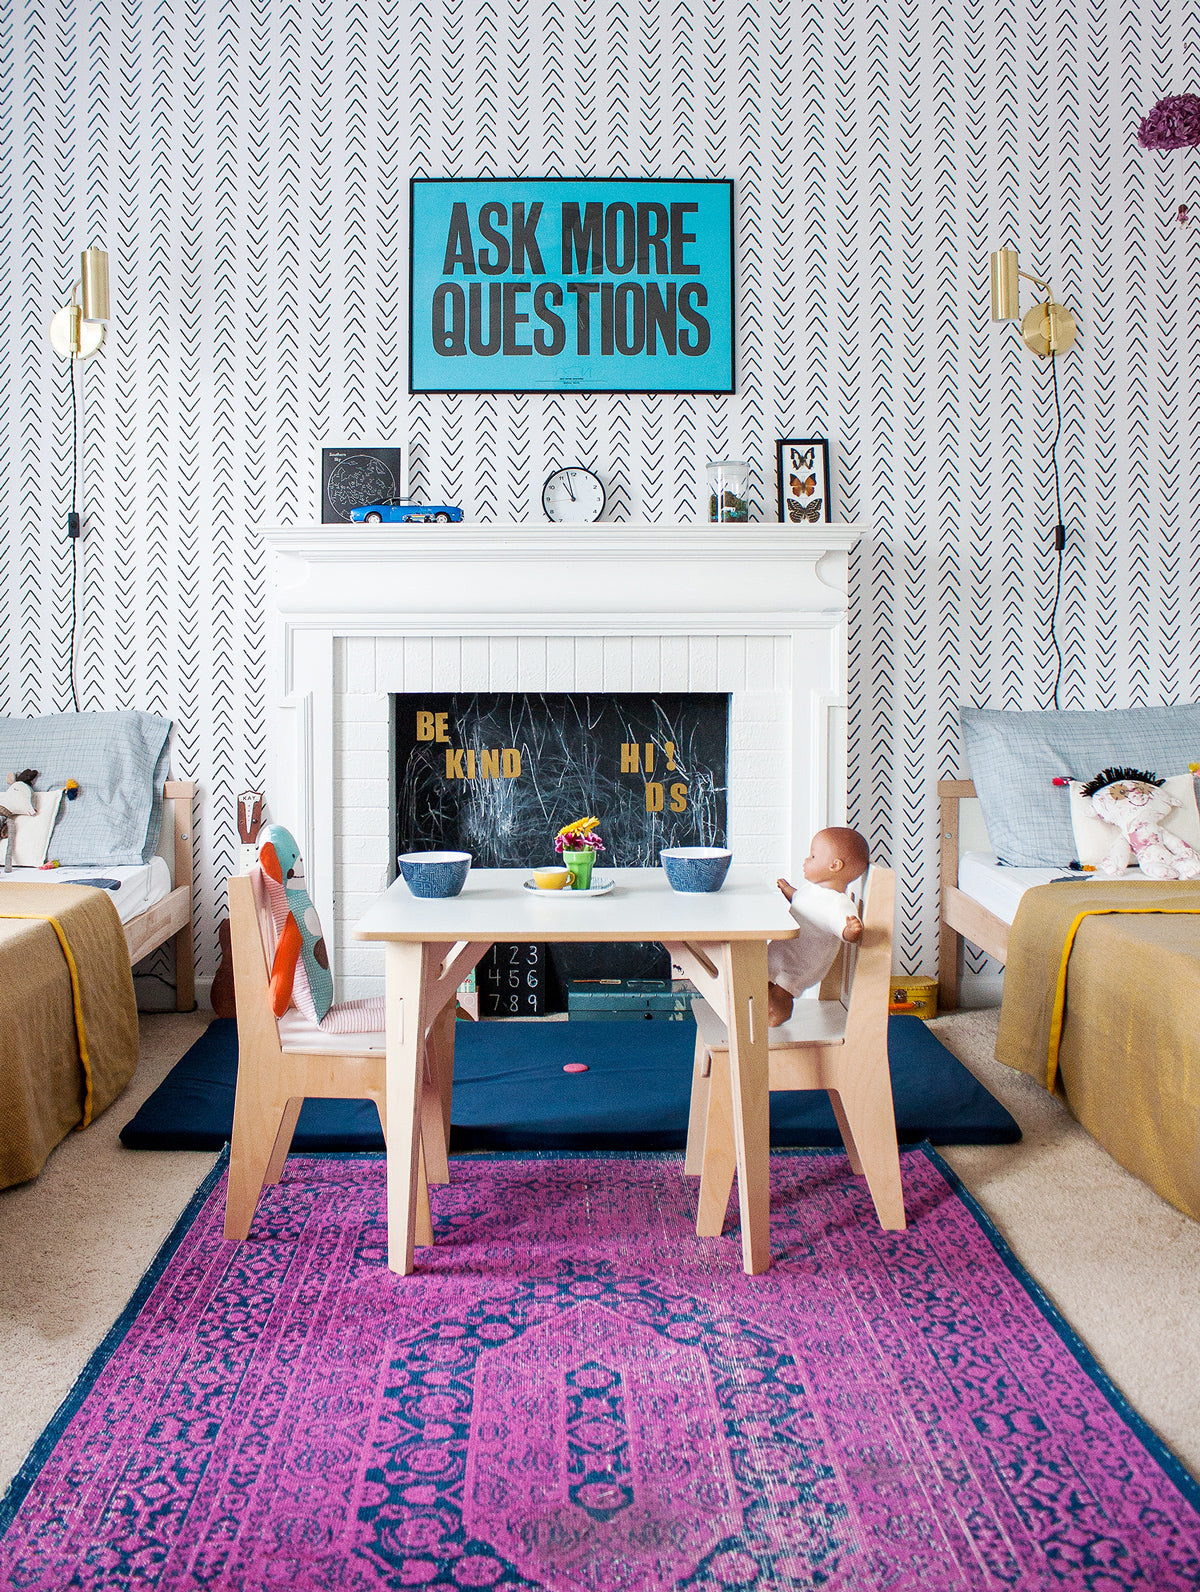 Bright shared kid's bedroom with Scandinavian wallpaper and coloful decor elements